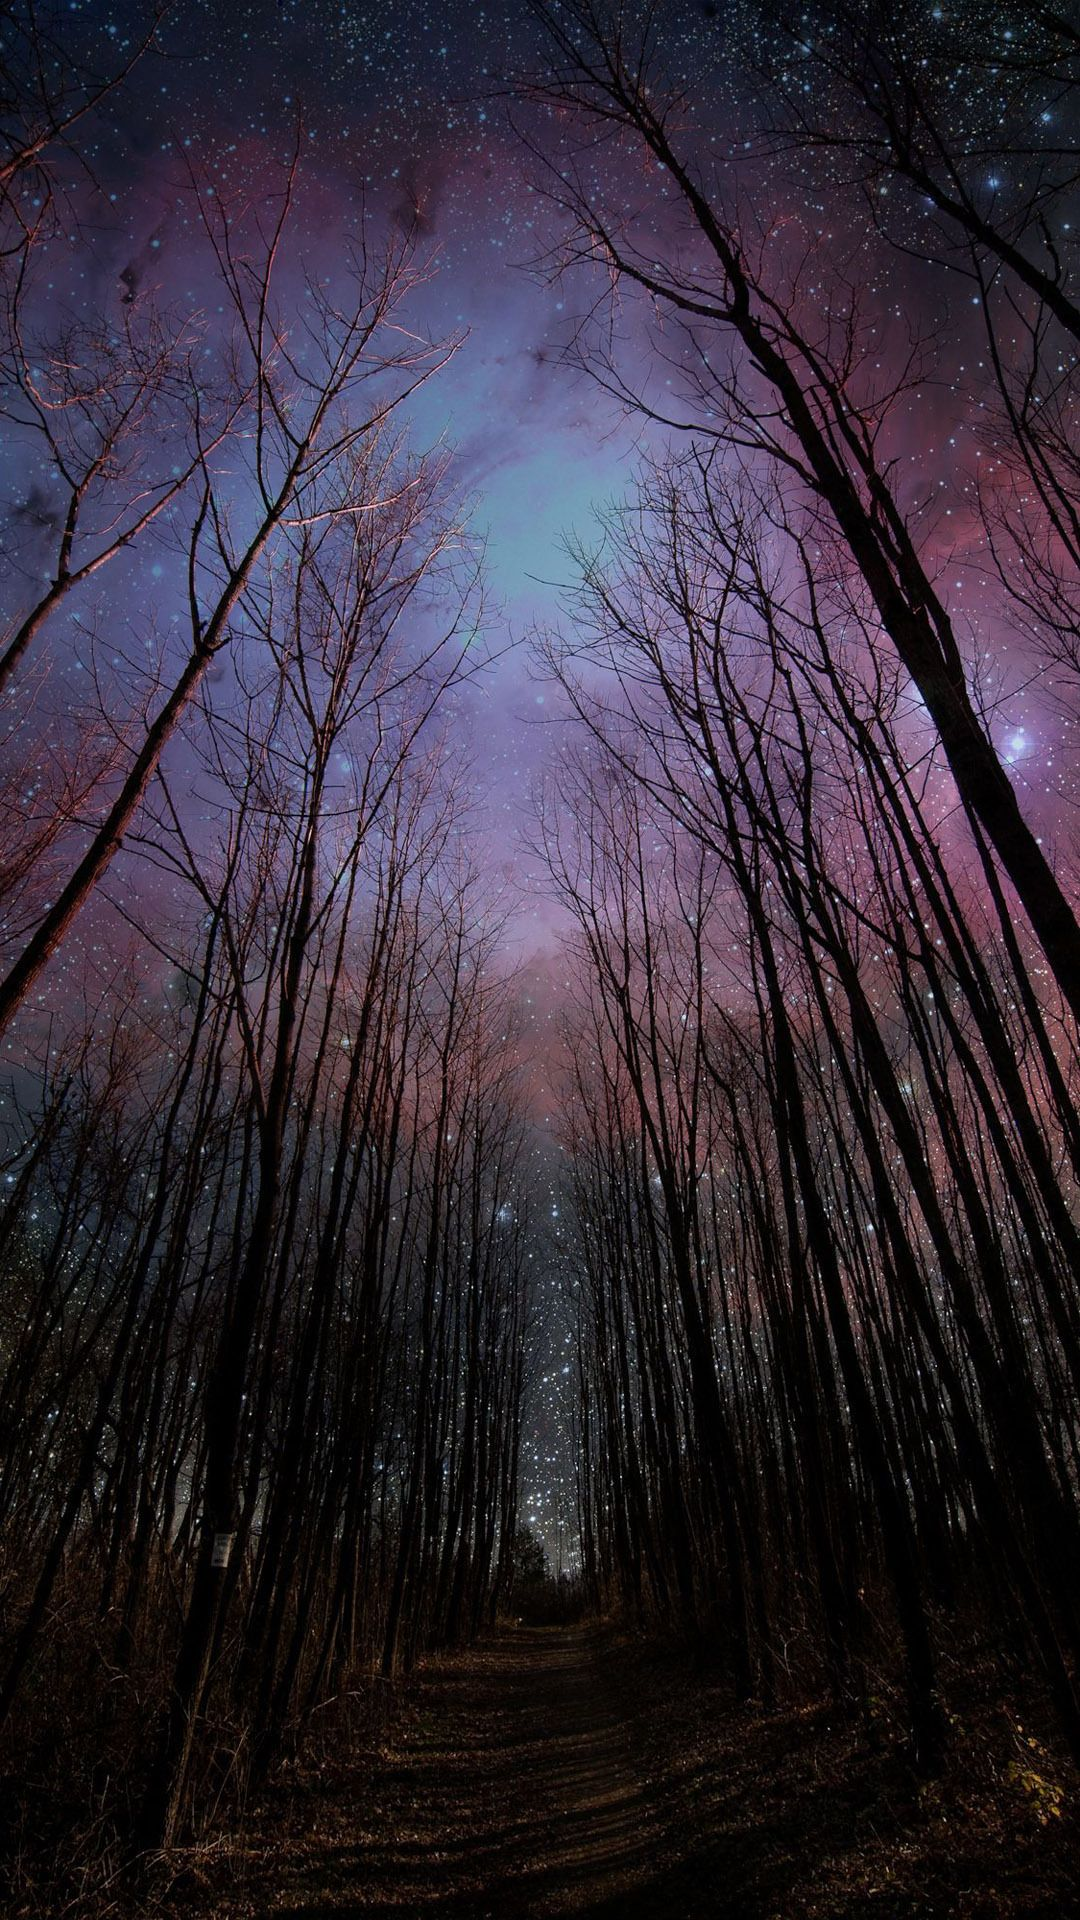 Bright Night Sky Aboe The Trees Mobile Wallpaper Iphone Wallpaper Sky Night Sky Wallpaper Live Wallpaper Iphone